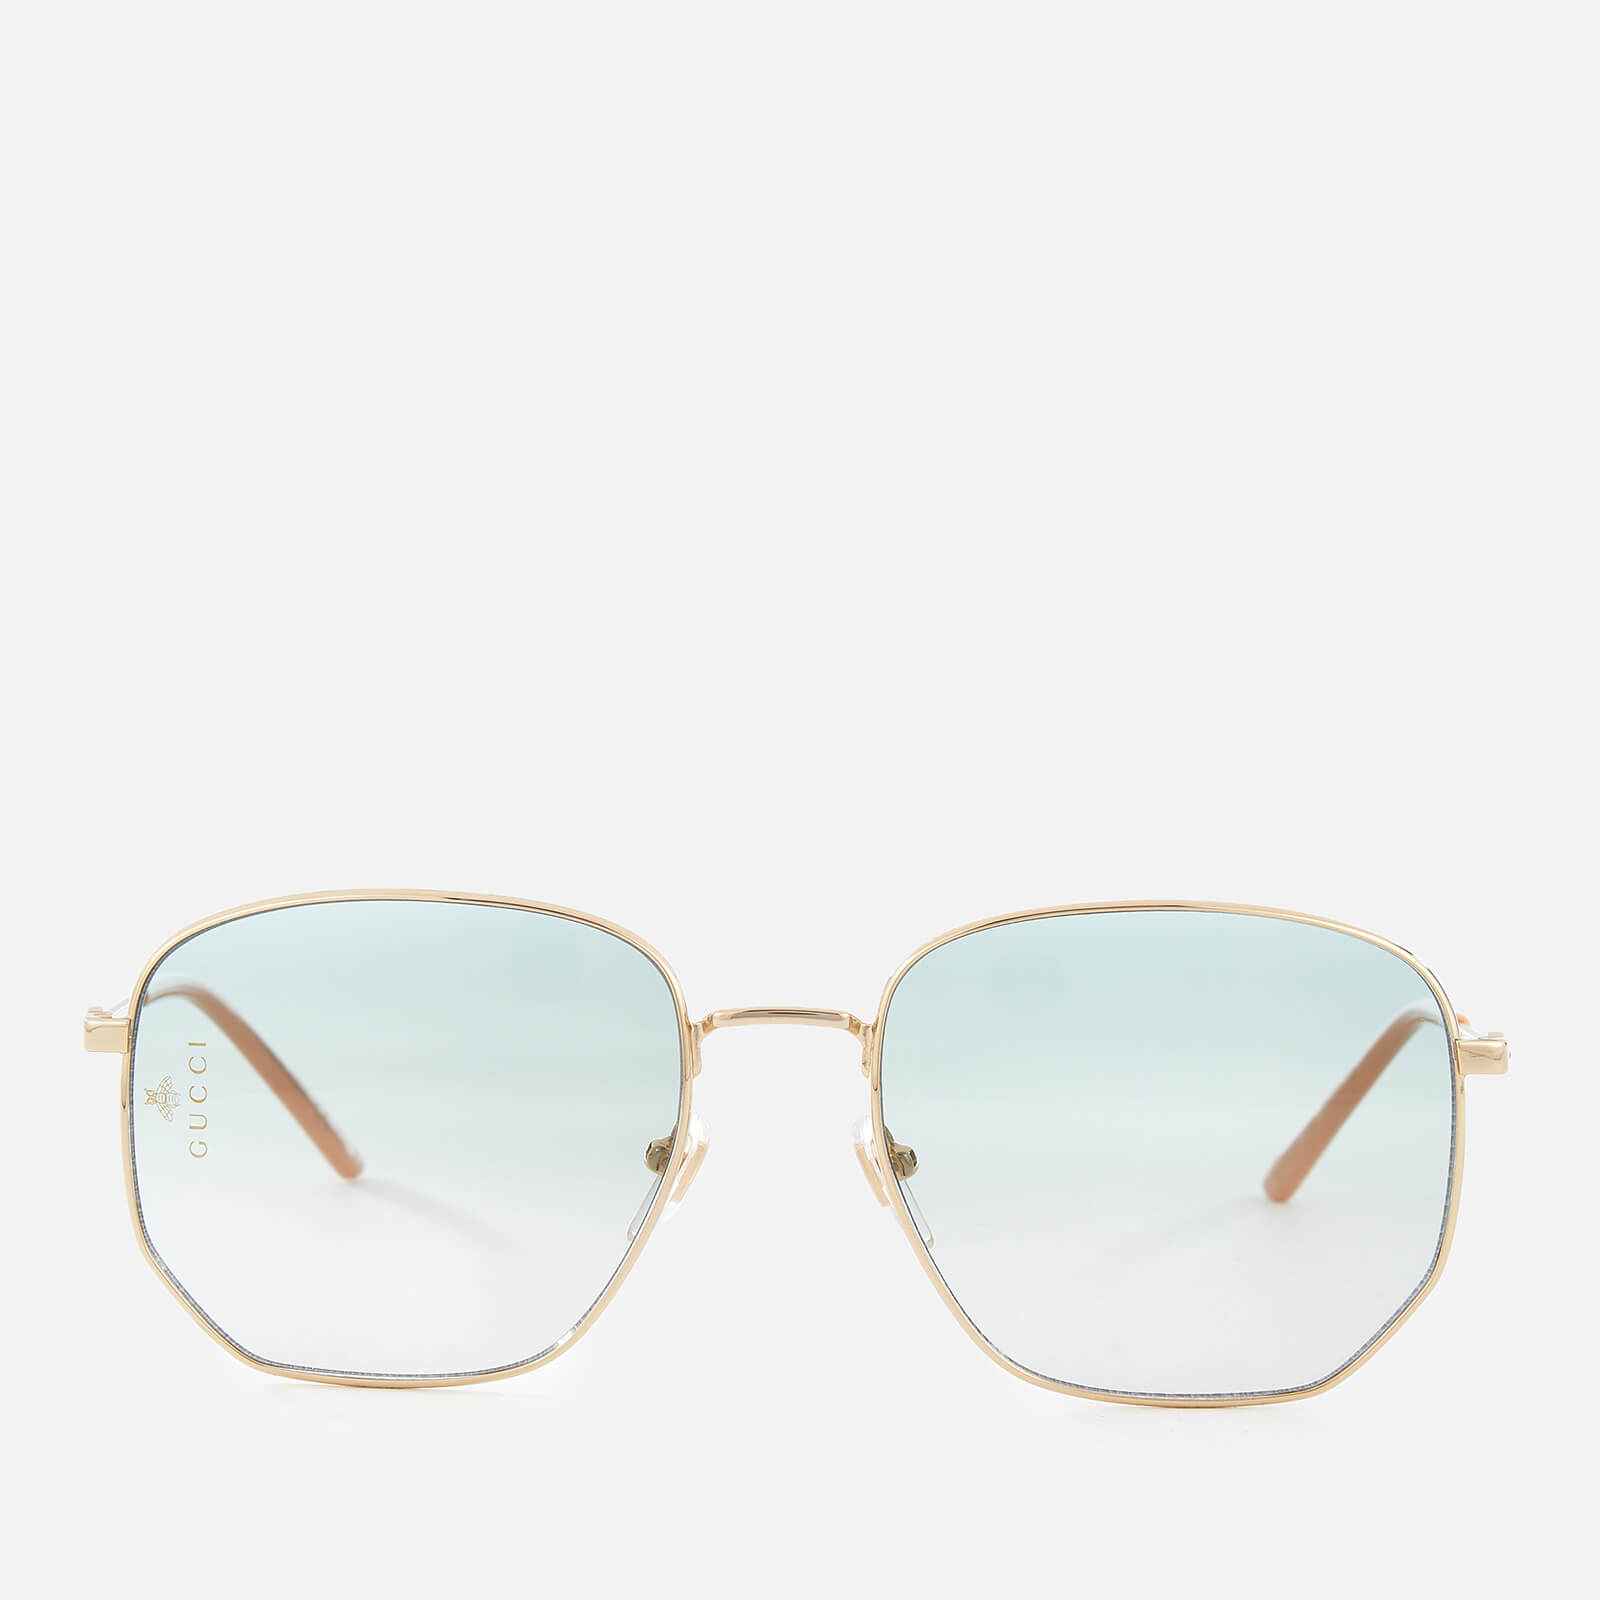 c1788c58d Gucci Women's Metal Square Frame Sunglasses - Gold/Green - Free UK Delivery  over £50